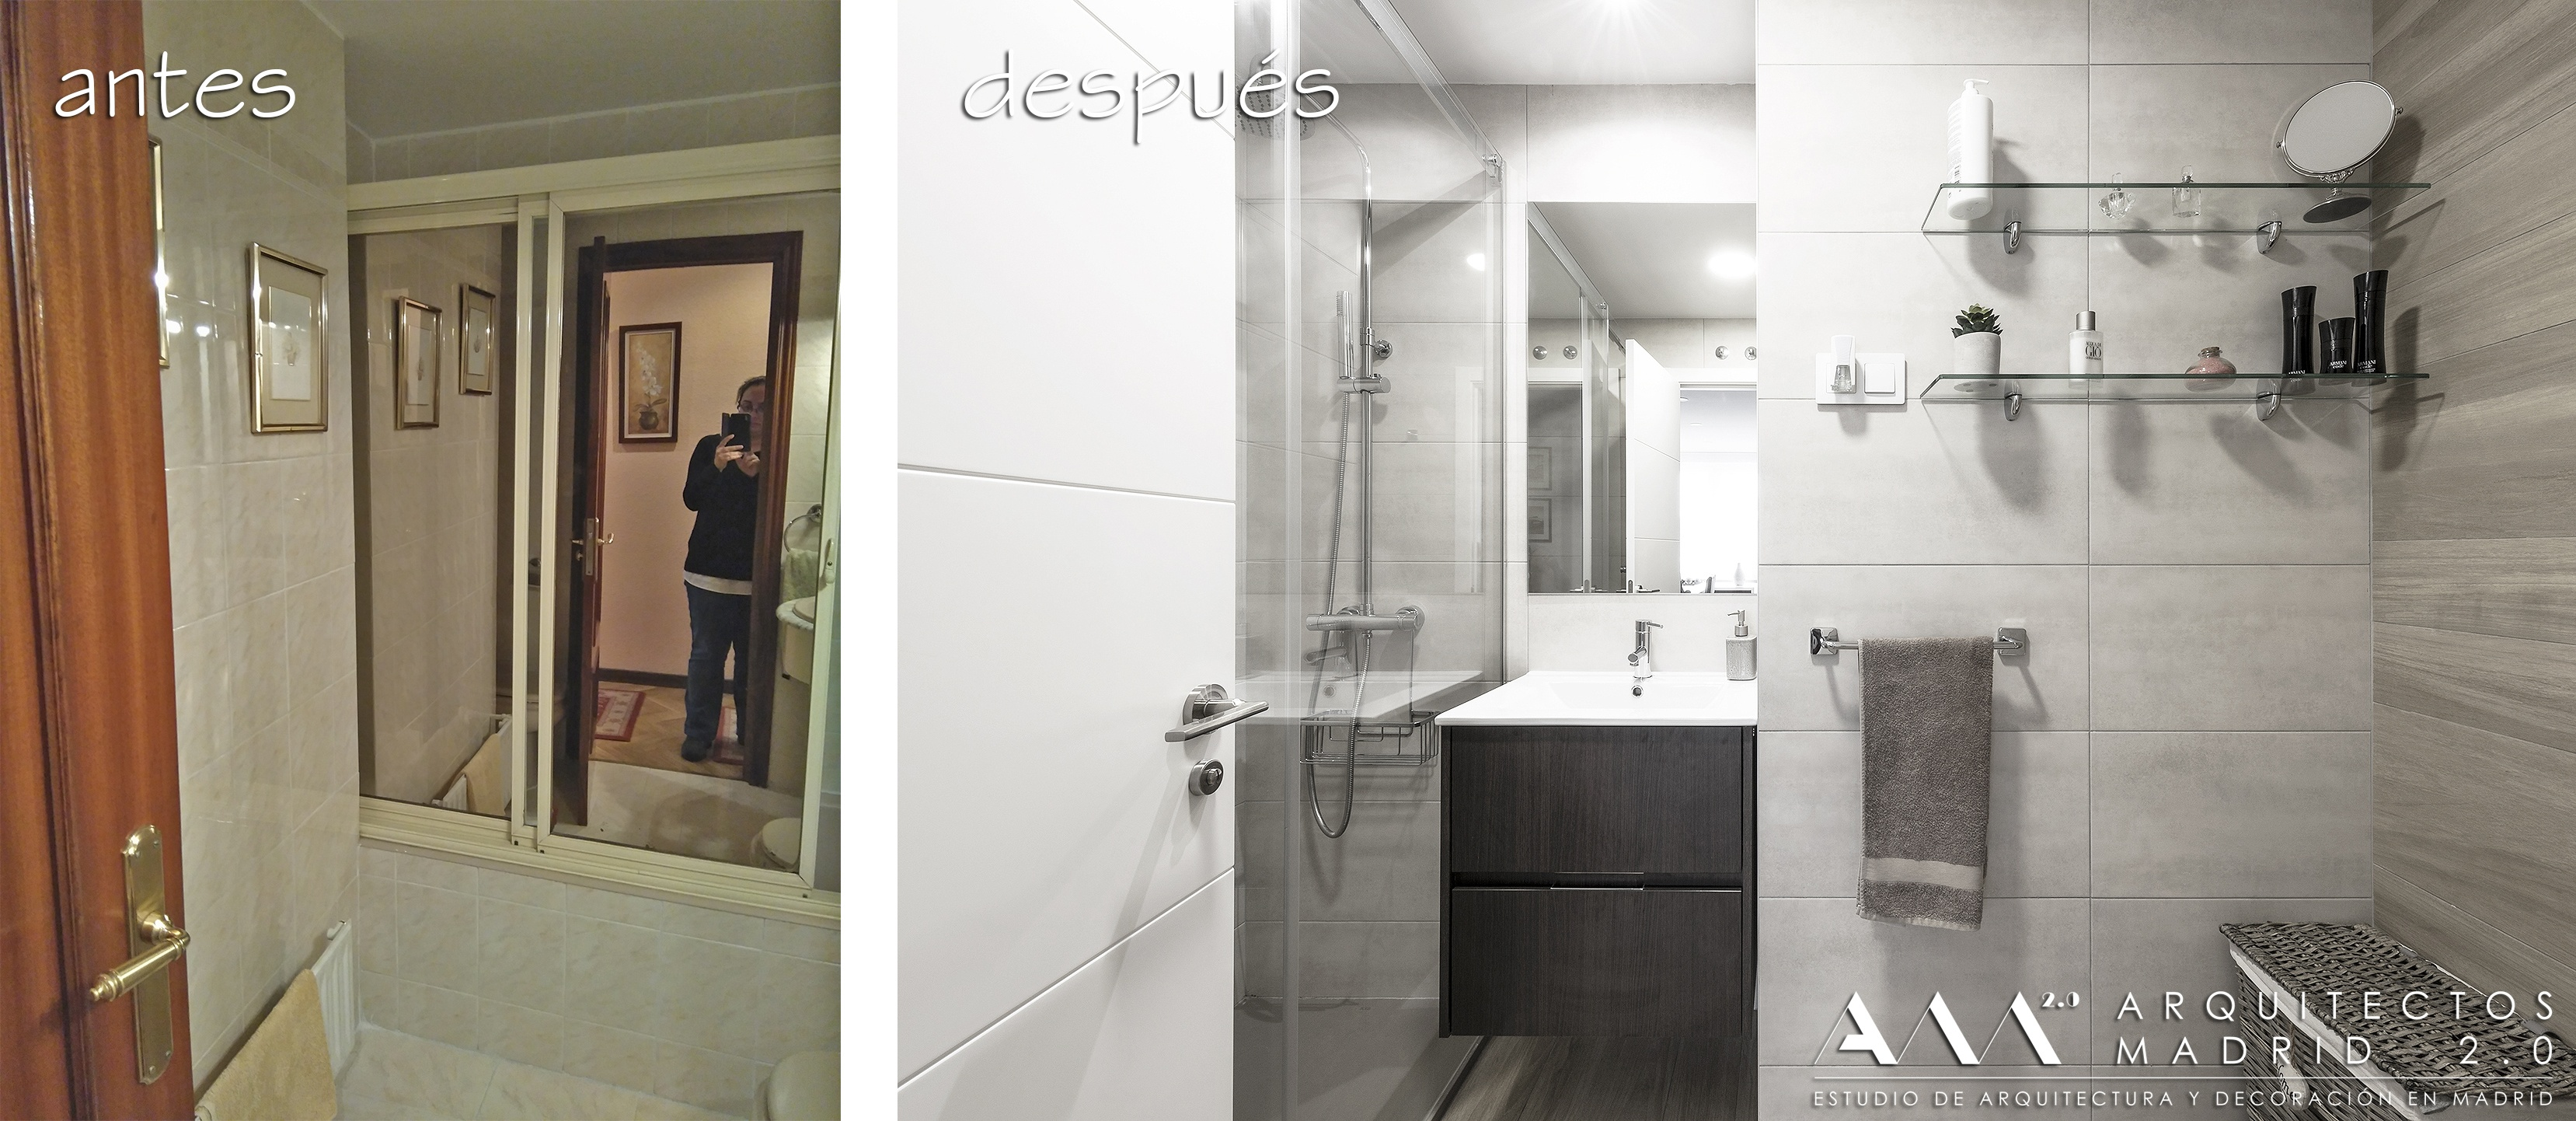 antes-despues-reforma-vivienda-ideas-decoracion-banos-pequenos-small-bathrooms